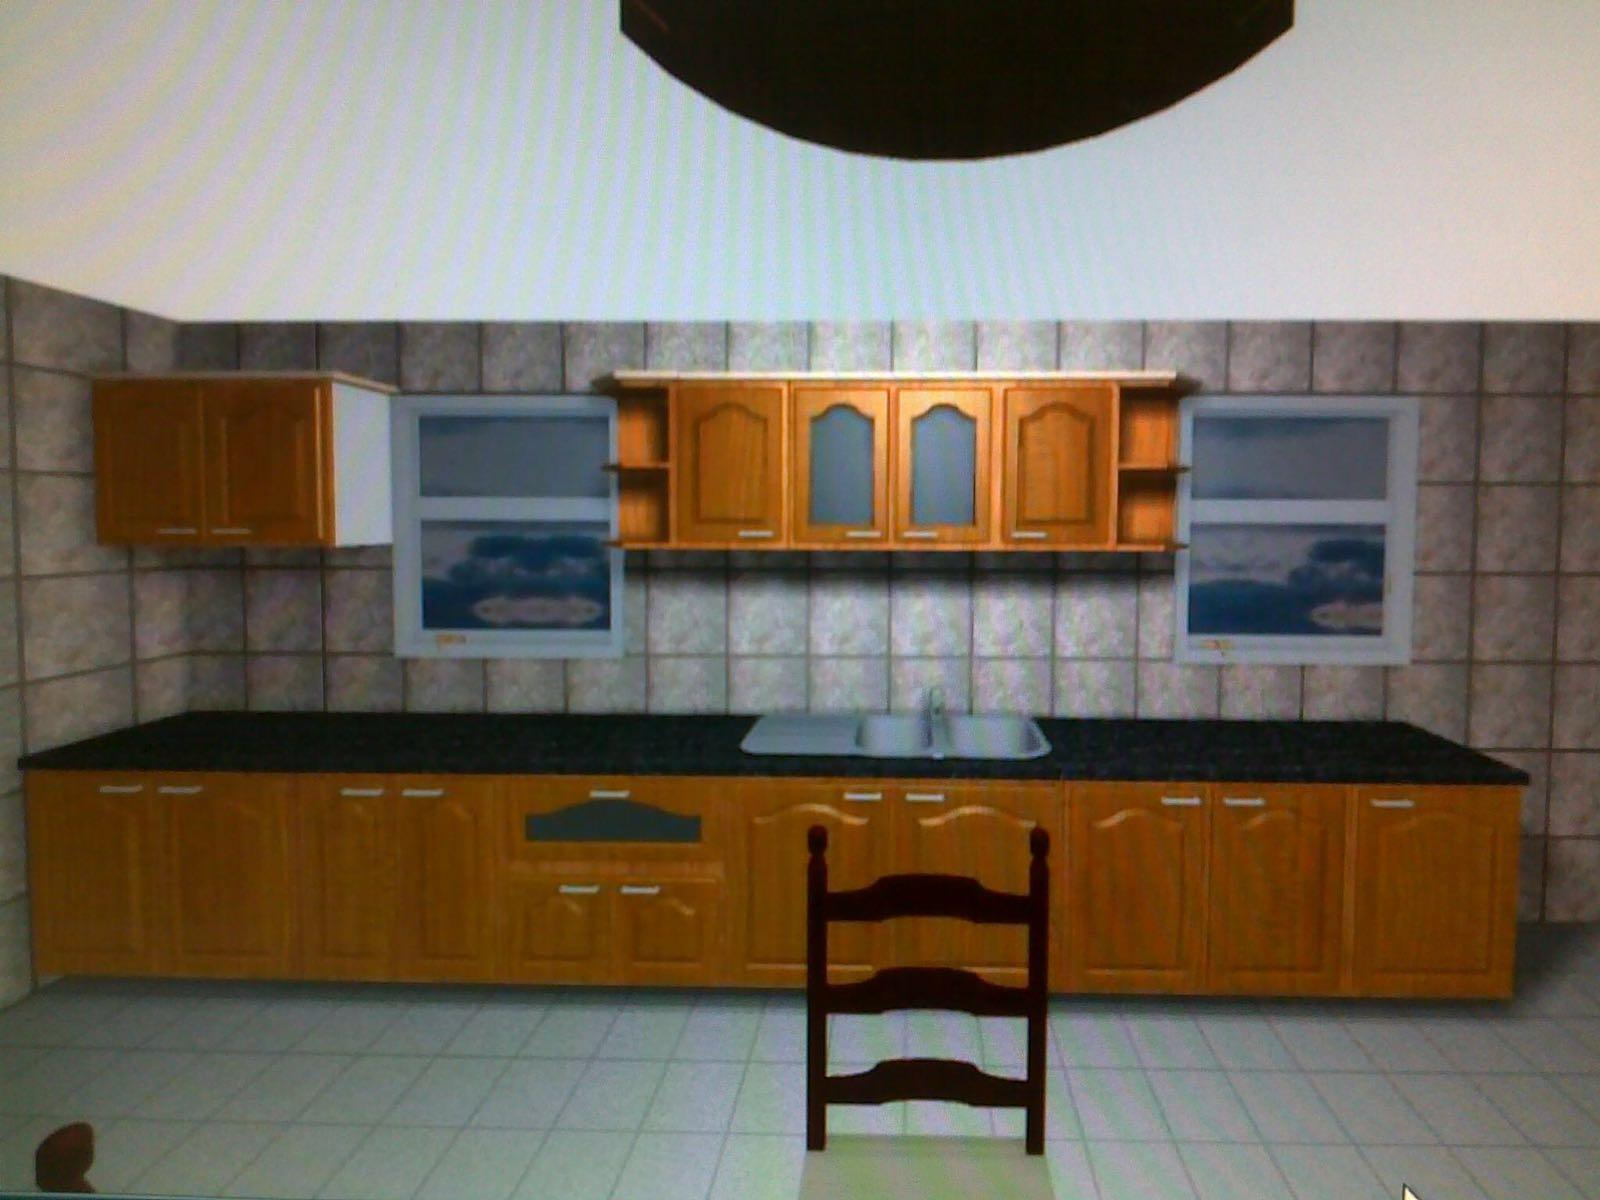 Aluminium Kitchen Cupboards In Affordable Price Qatar Living